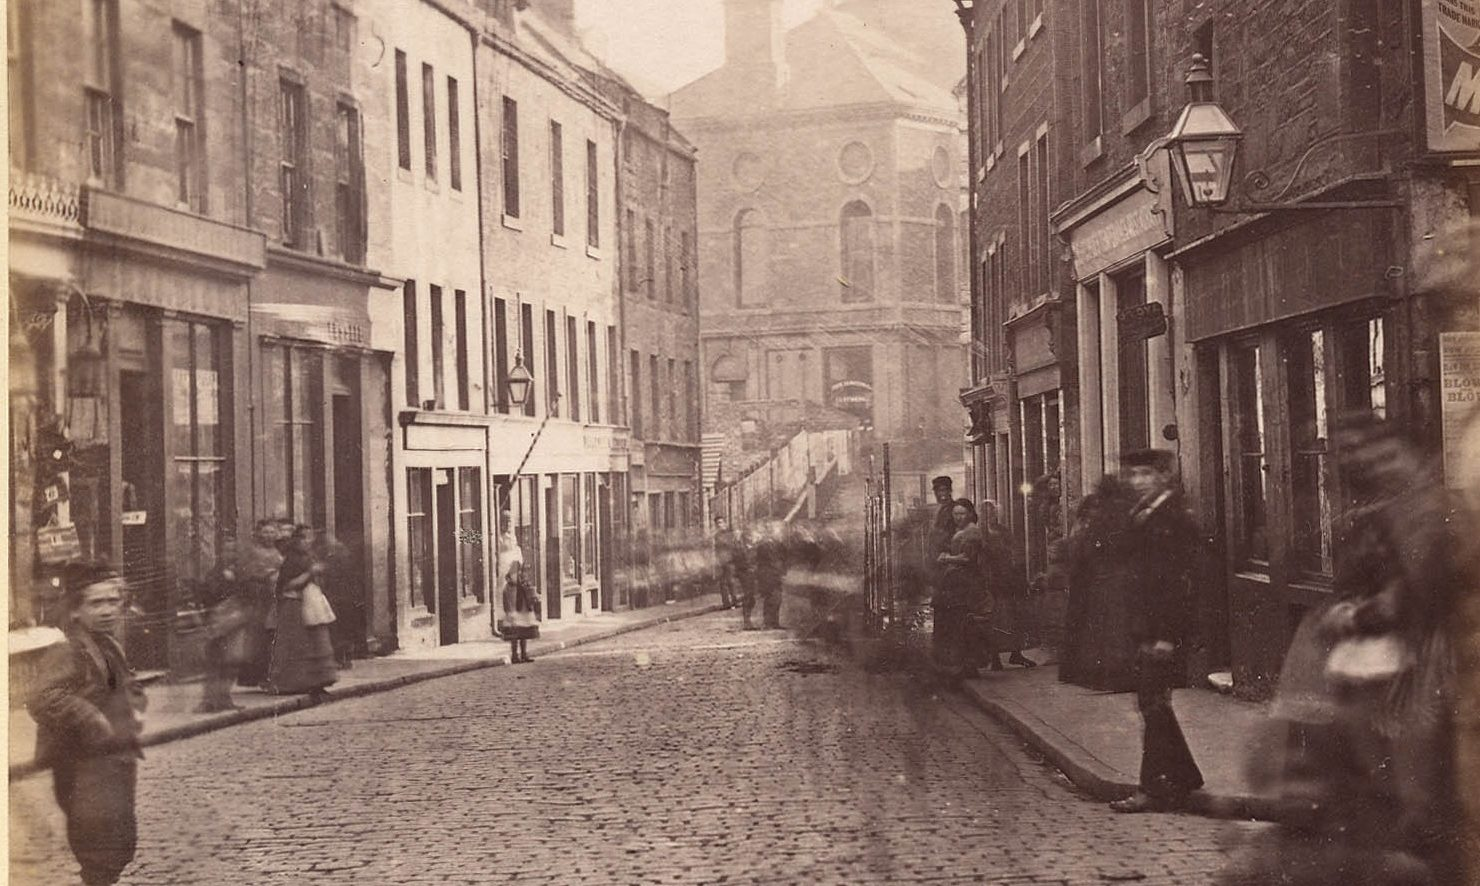 The narrow of the Murraygate looking towards High St before improvement in 1875.